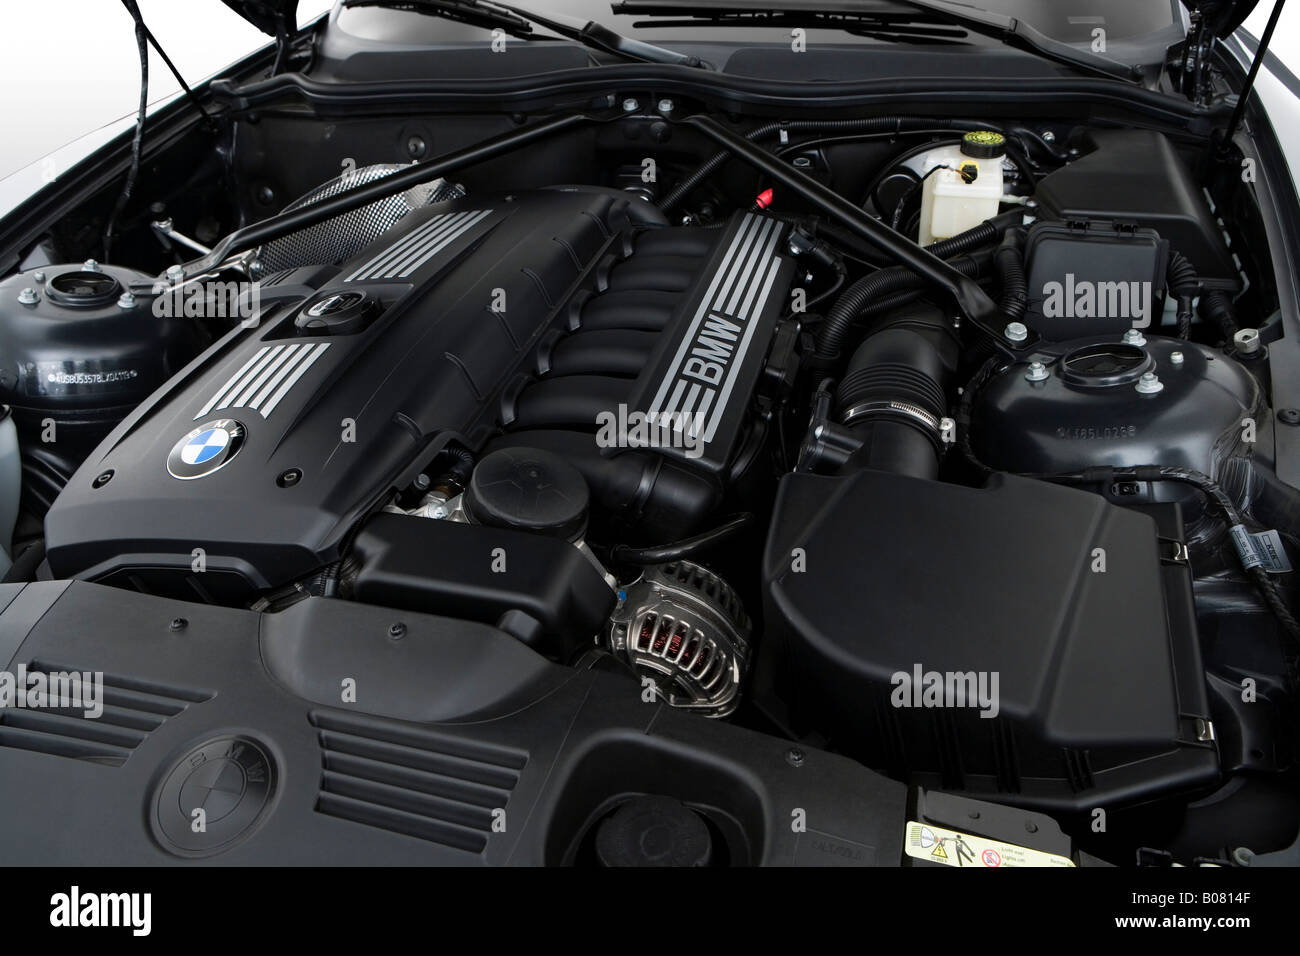 2008 Bmw Z4 30si In Grau Motor Stockfoto Bild 17386895 Alamy